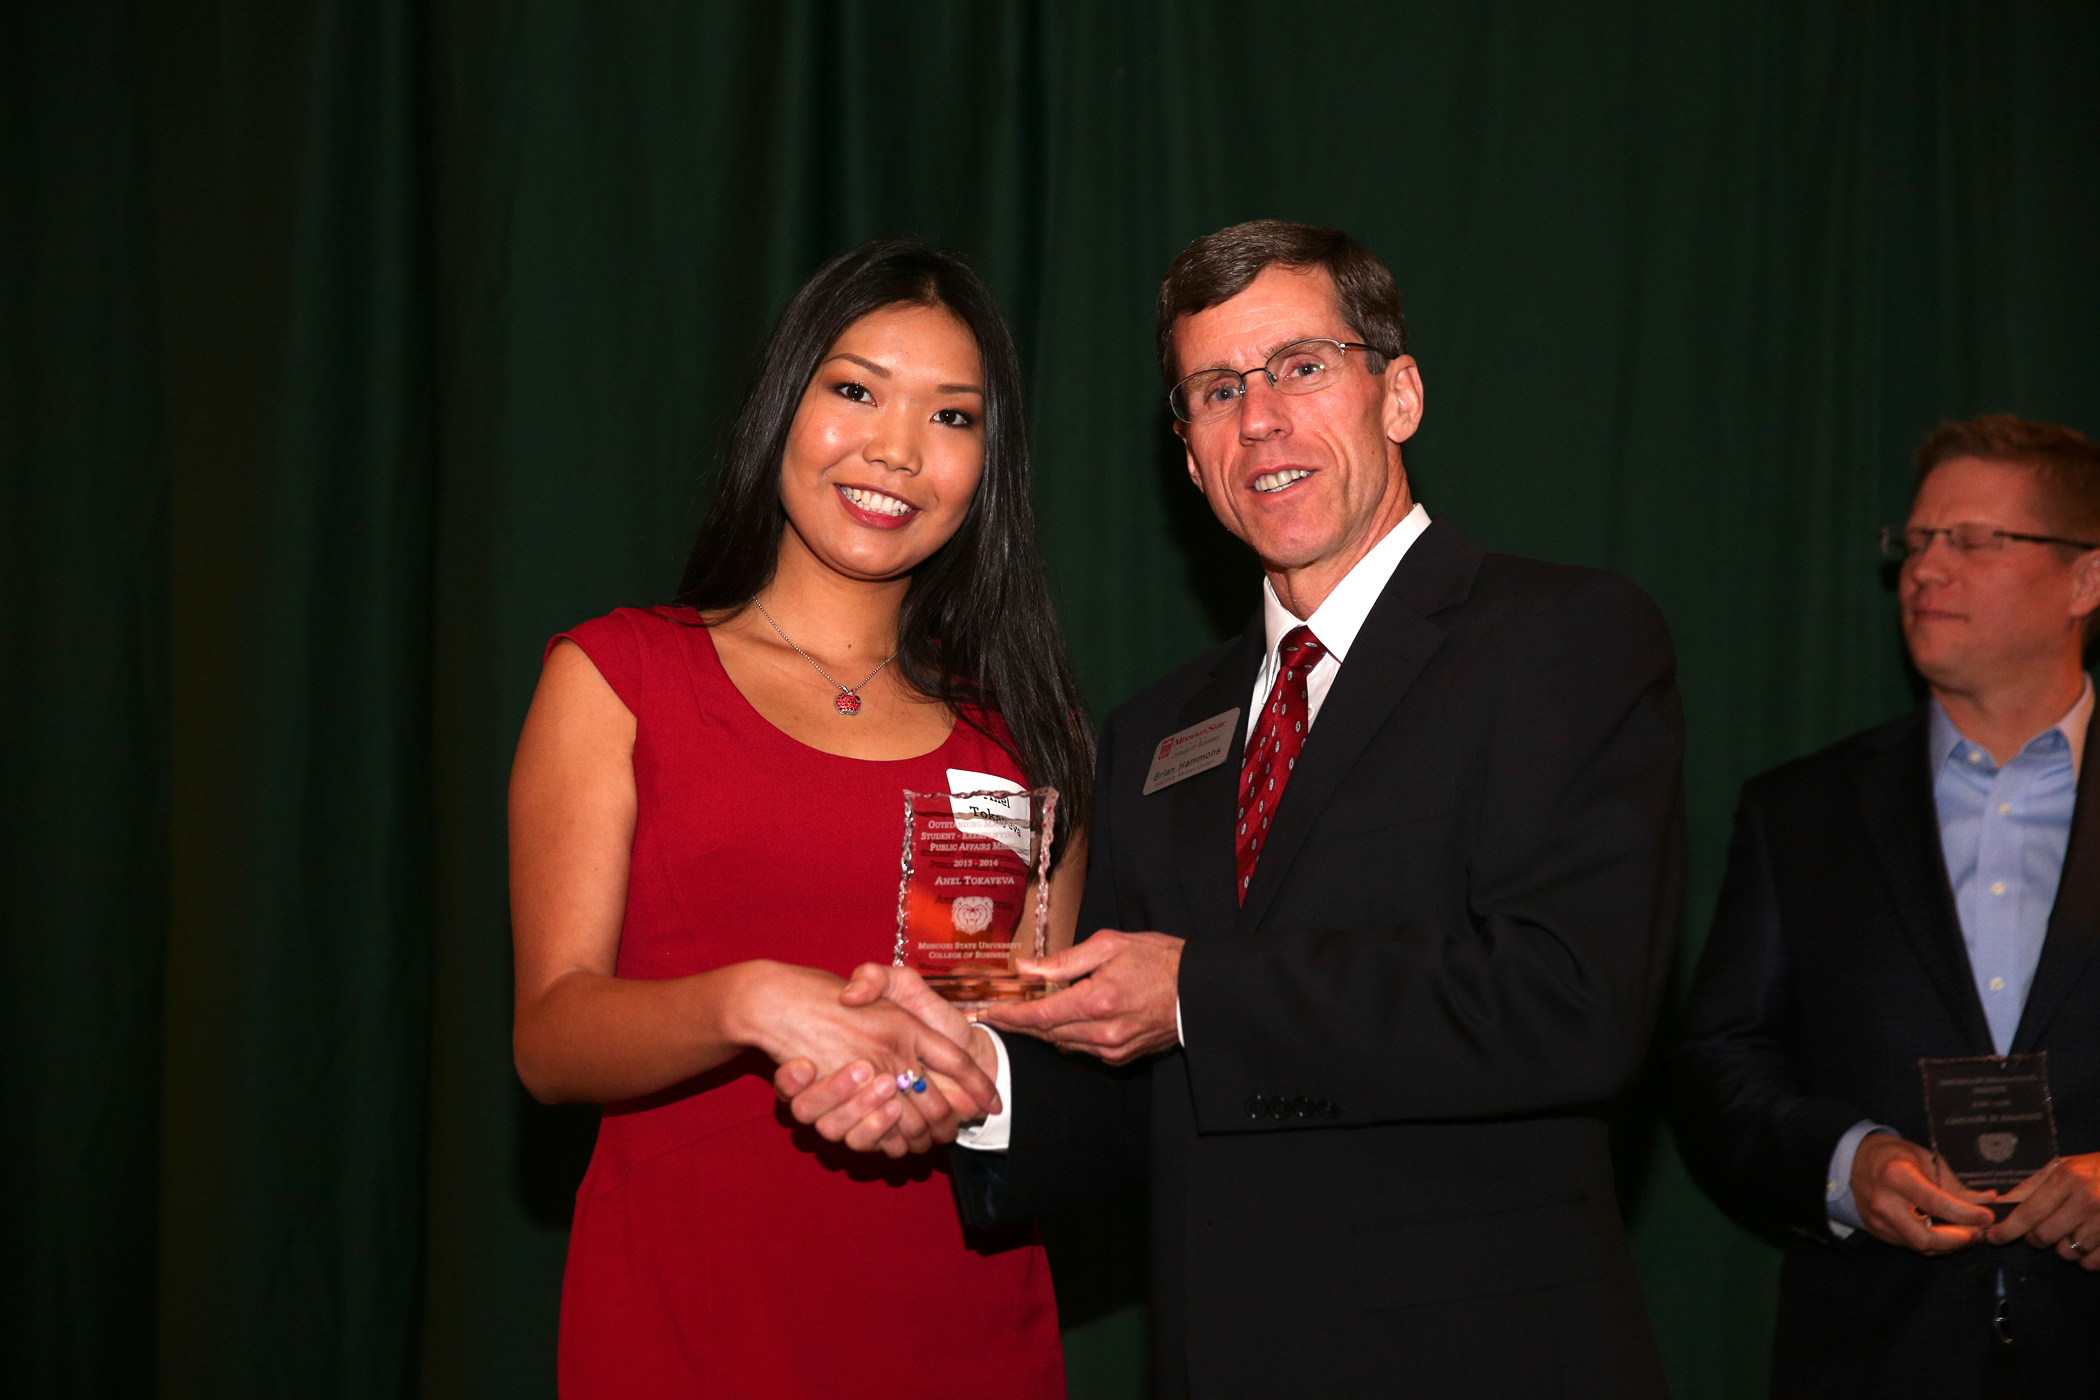 EAC member Brian Hammons, presents Anel Tokayeva with the Outstanding Marketing Student – Exemplifying the Public Affairs Mission award.